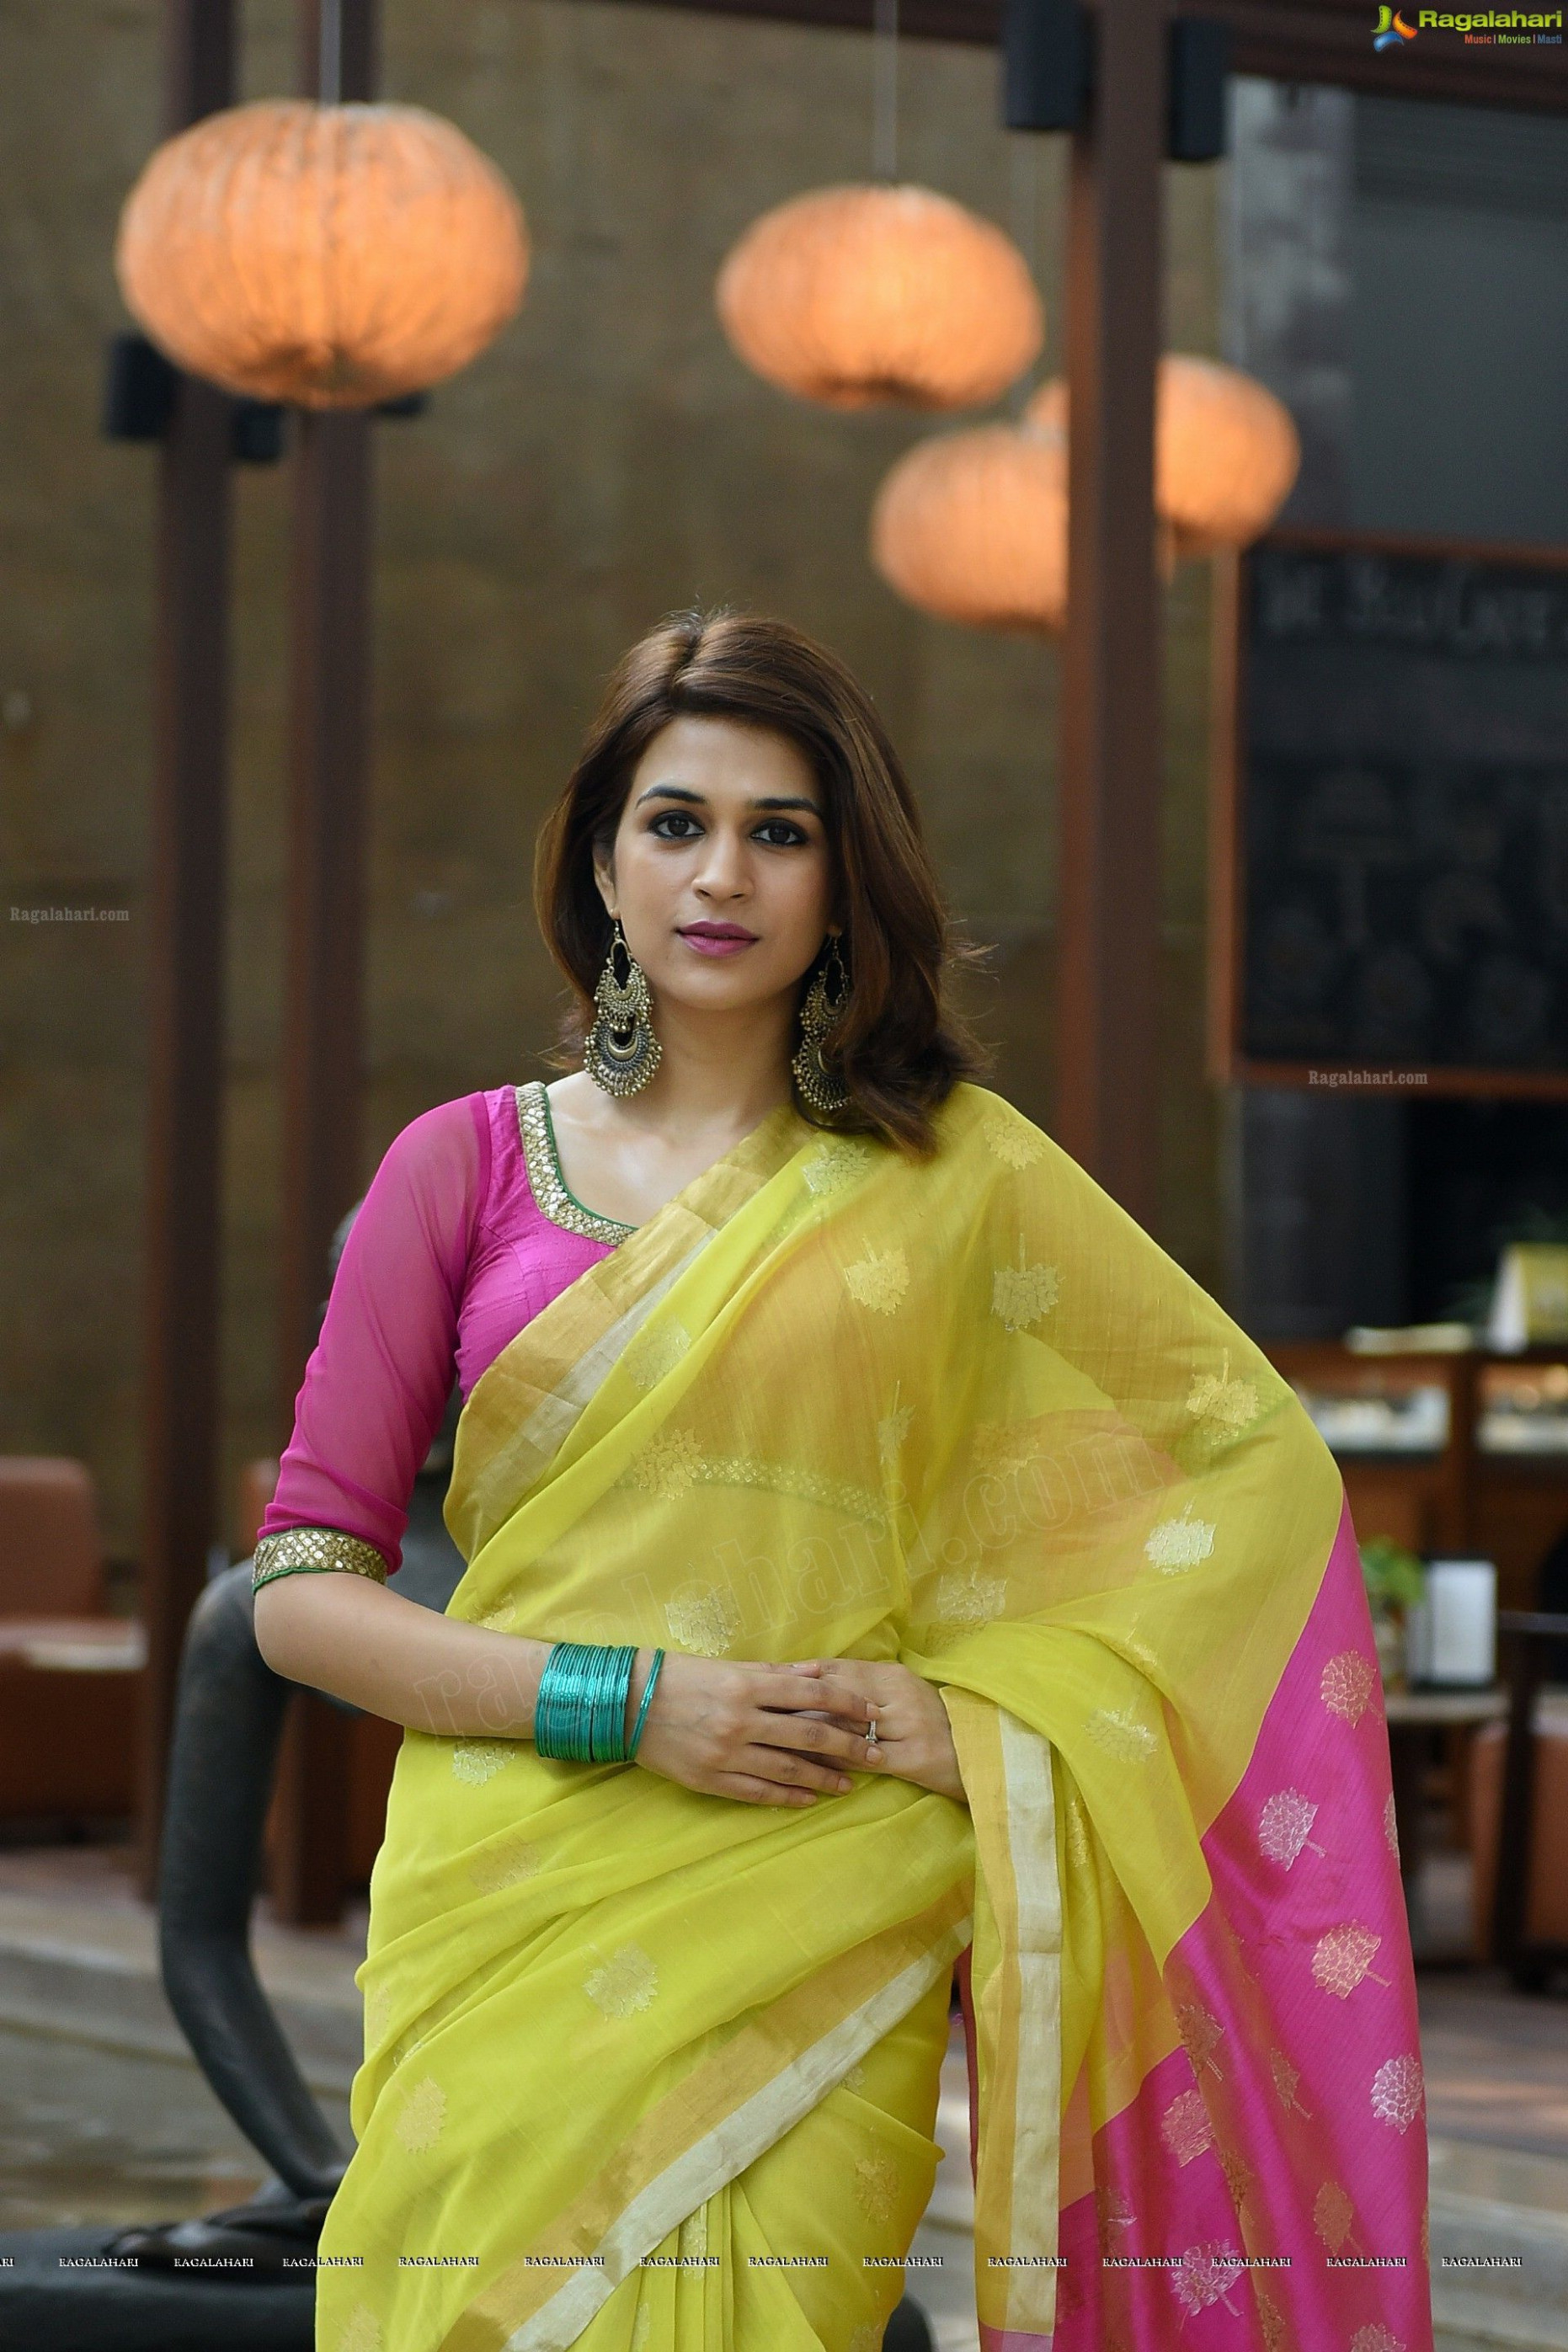 Tollywood HQ - Shraddha Das In Saree Photos